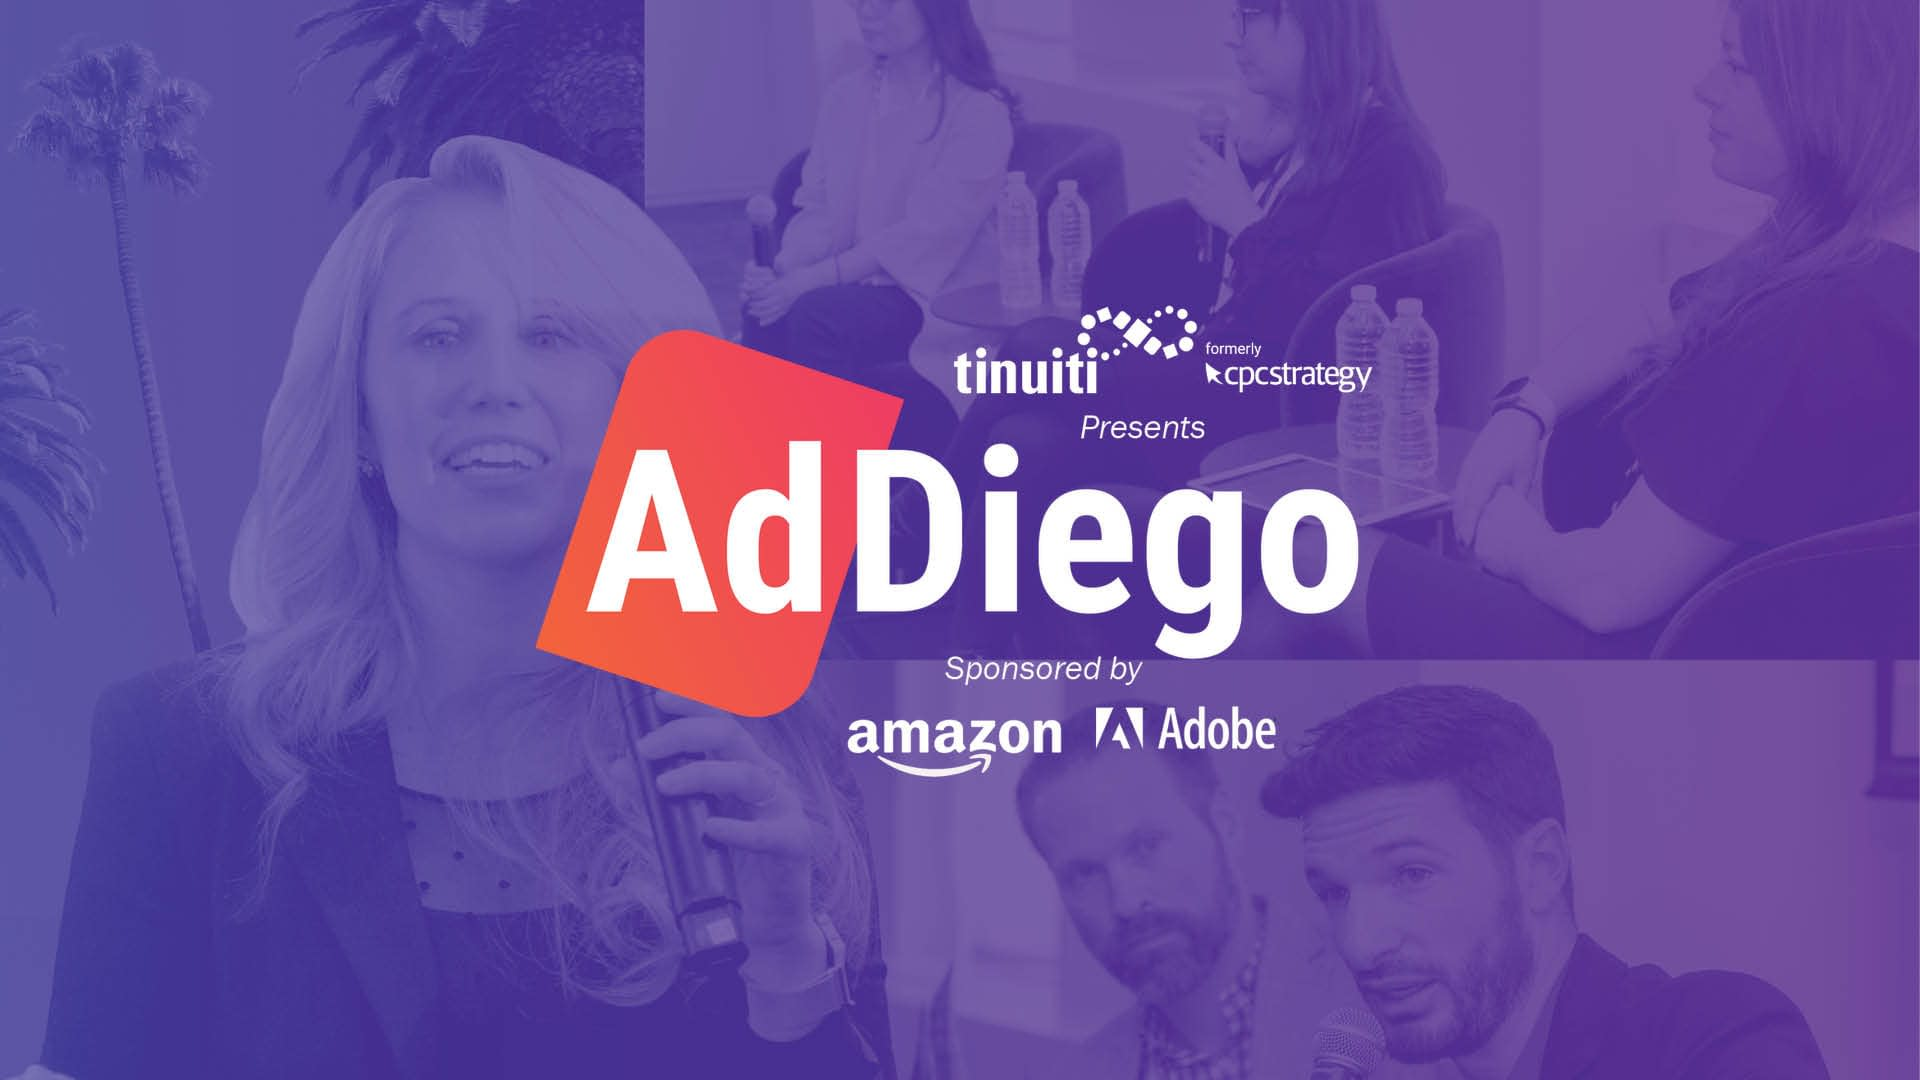 Tinuiti, formerly CPC Strategy, presents: AdDiego 2019 | sponsored by Amazon and Adobe